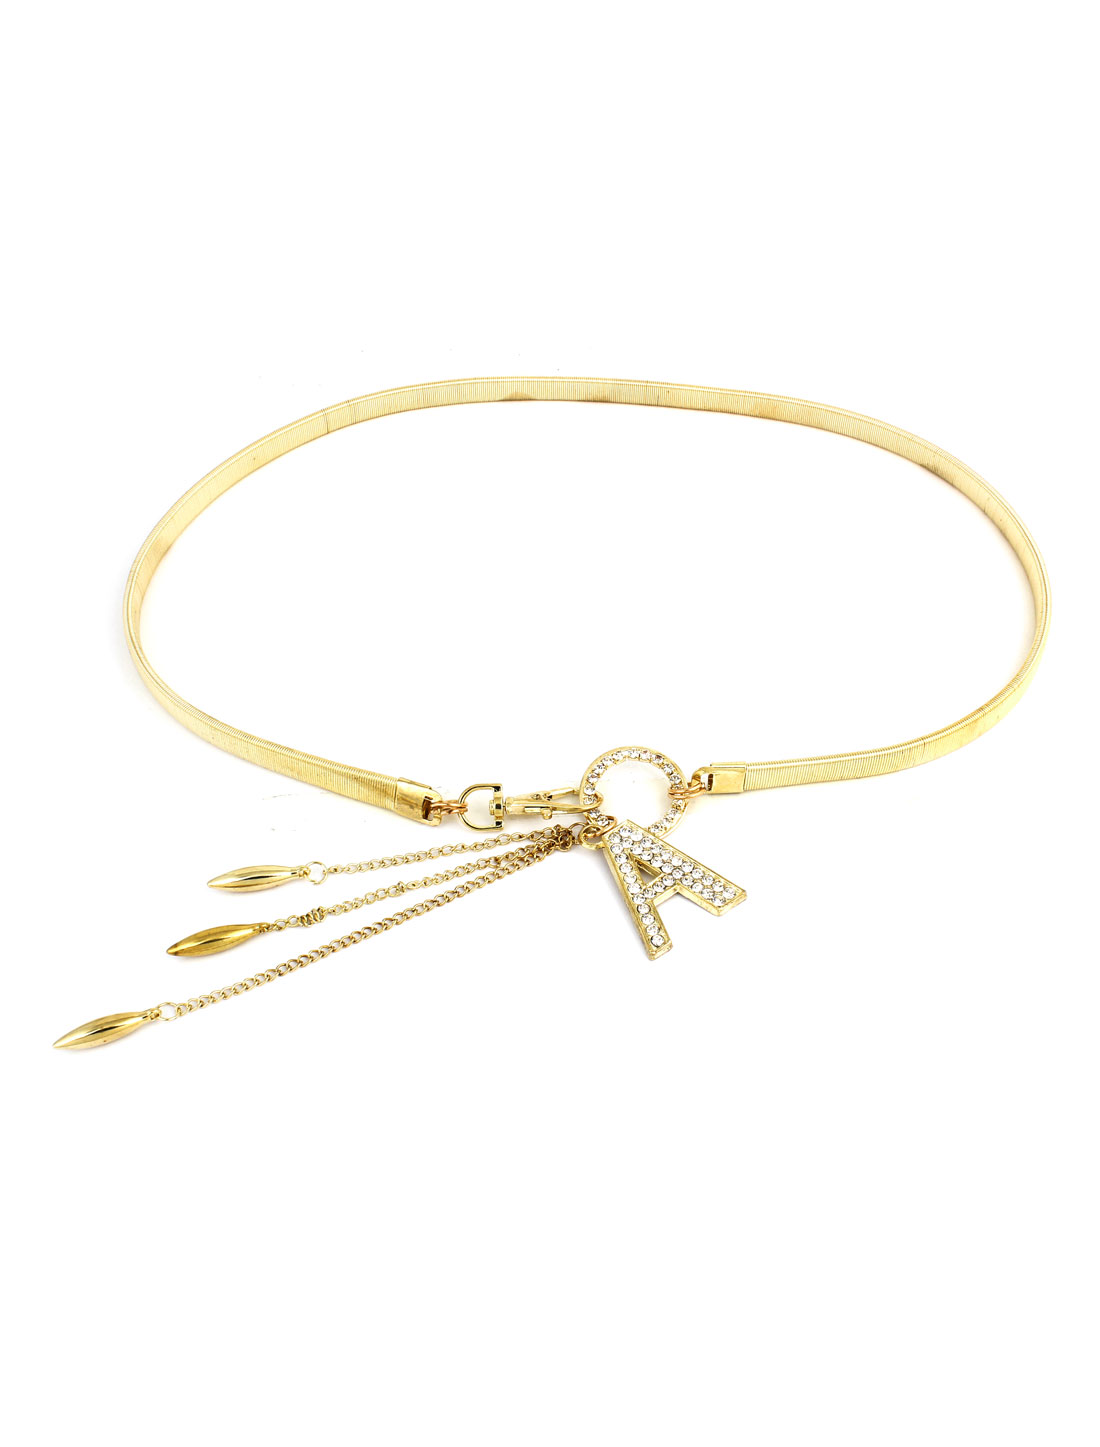 Lady Letter A Detail Gold Tone Metal Spring Clasp Elastic Waist Belt Chain